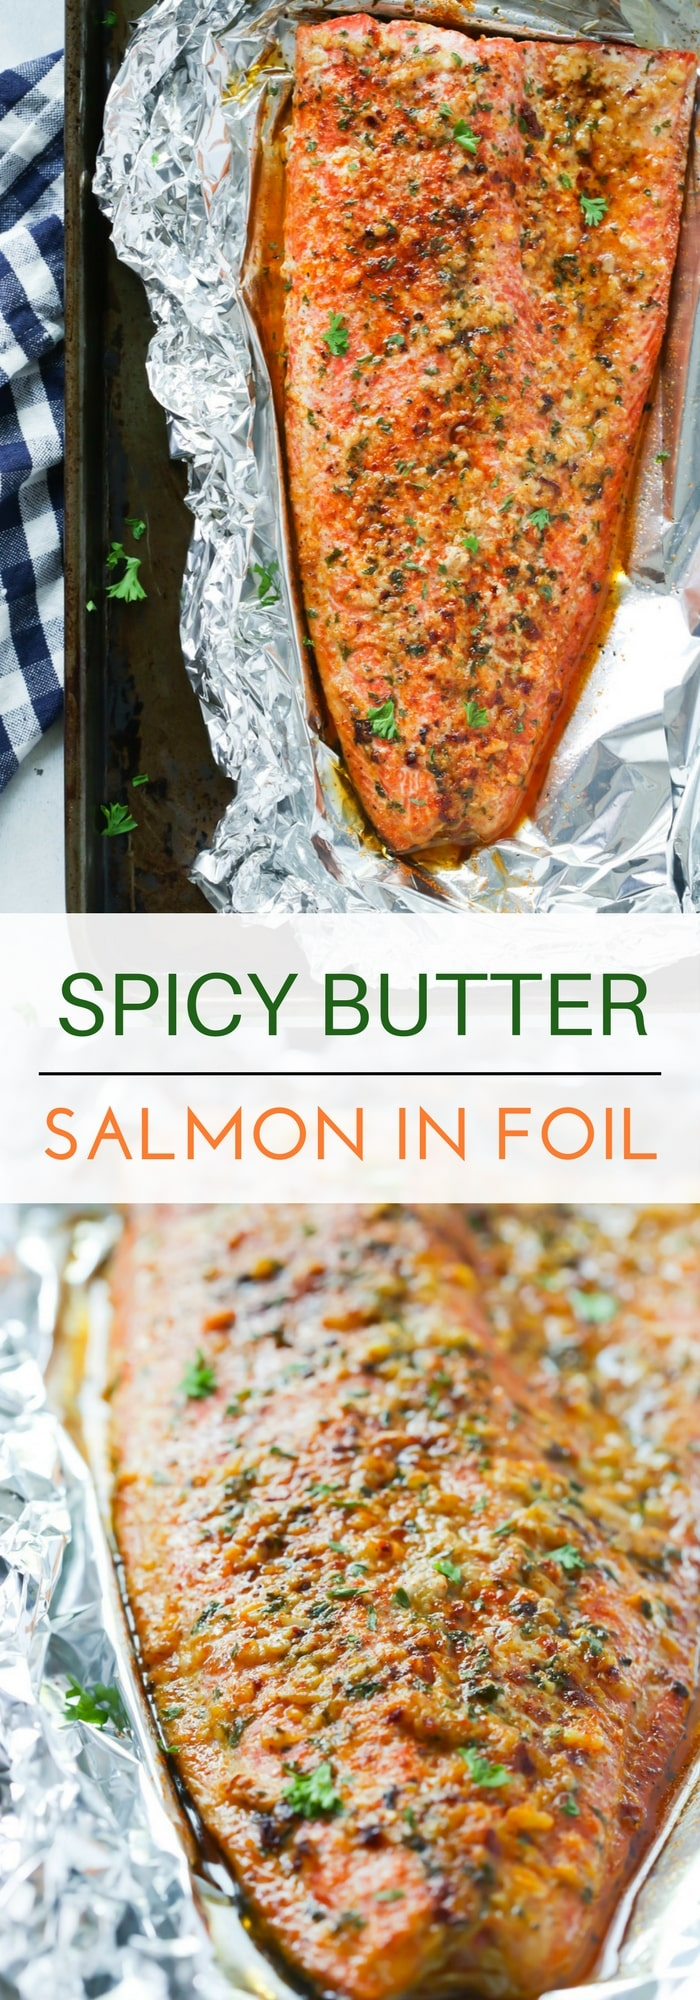 This Spicy Butter Salmon in Foil is made with melted butter and lots of spices. It's cooked in 20 minutes, then broiled for the crispy finish!